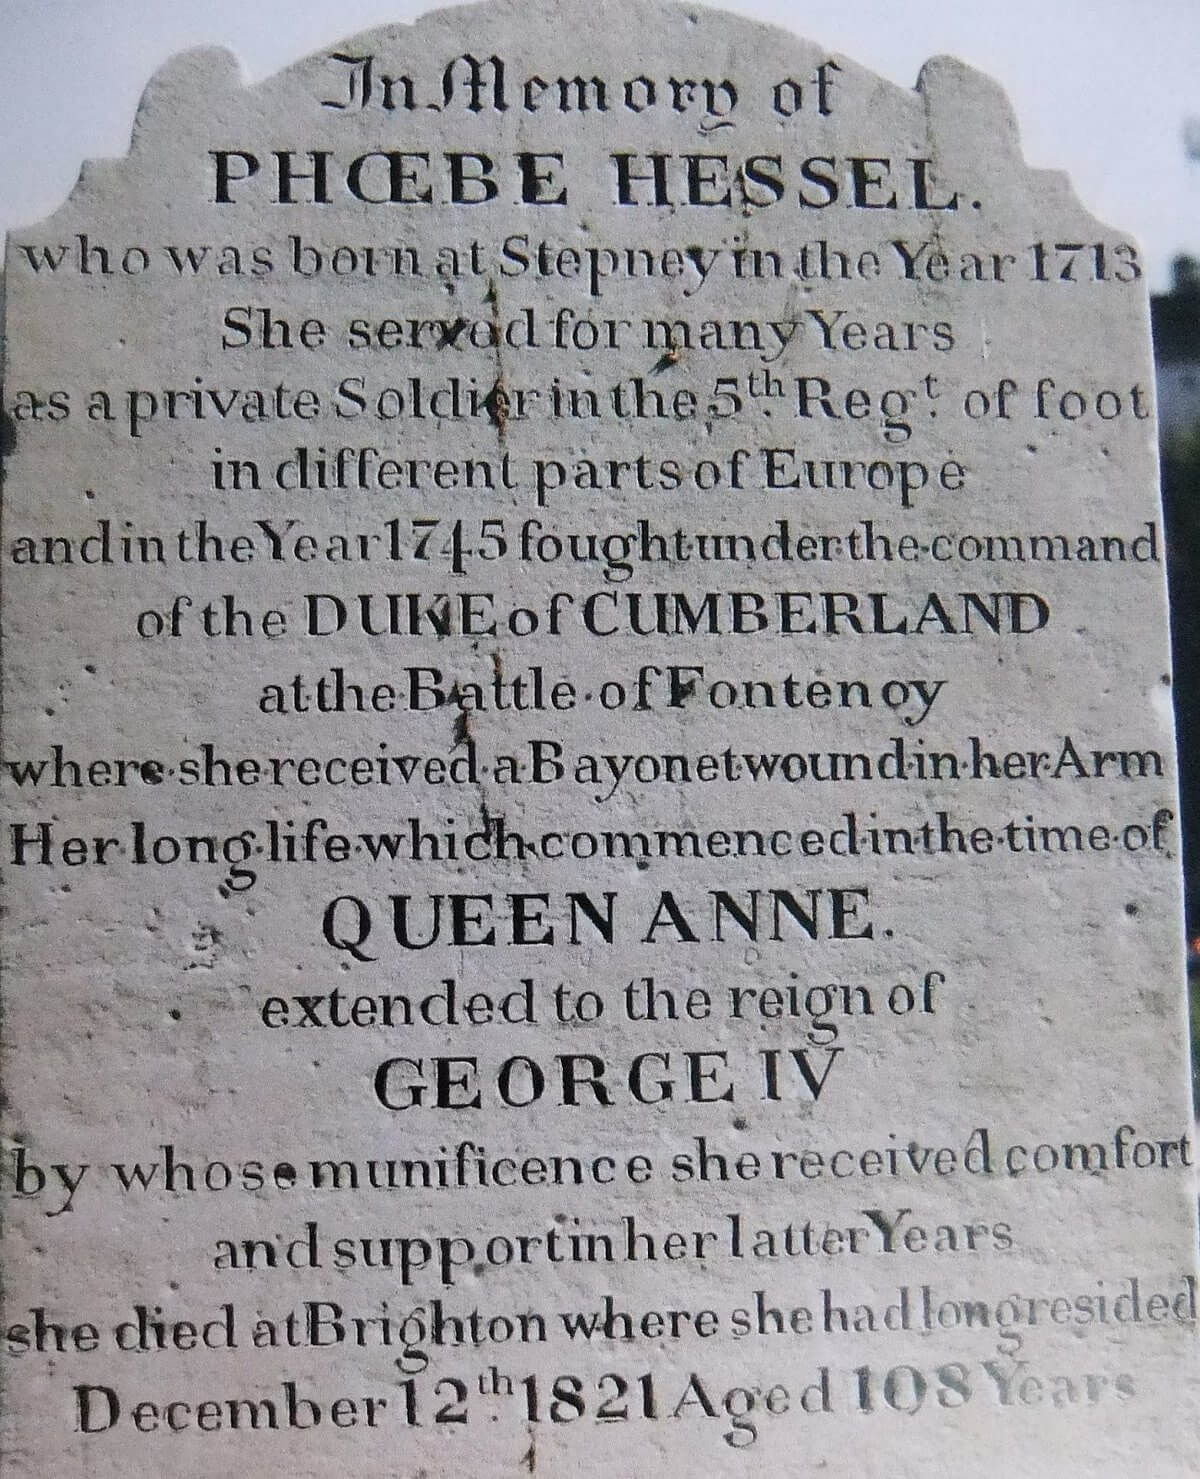 Phoebe Hessel's gravestone at Brighton, once restored by the Northumberland Fusiliers